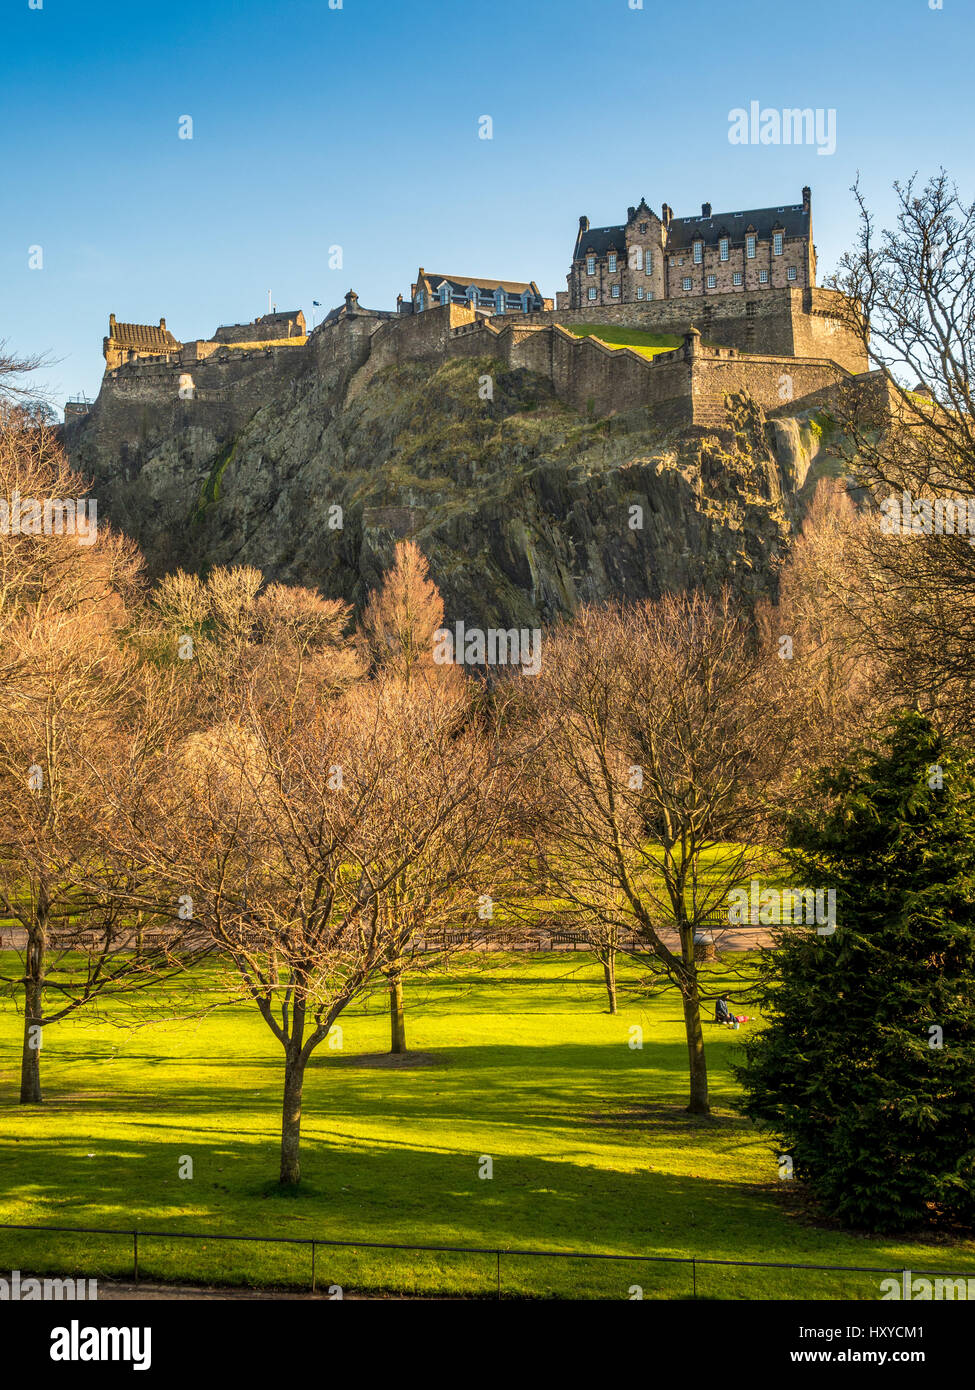 Princes Street Gardens and Edinburgh Castle, Edinburgh, Scotland, UK. - Stock Image